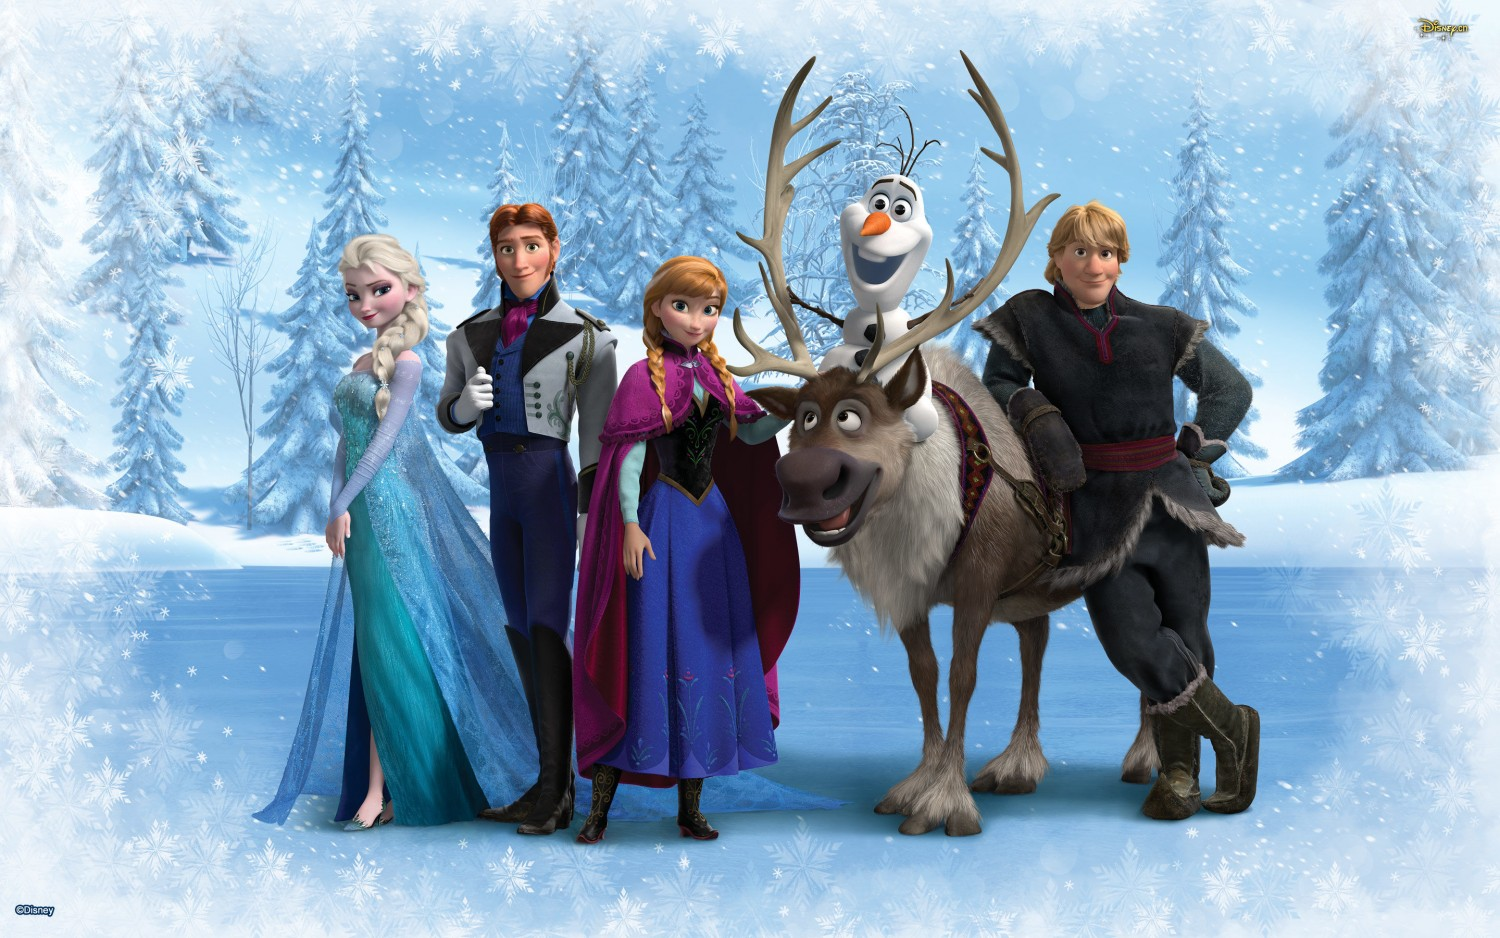 can-frozen-2-possibly-live-up-to-fan-expectations-682489